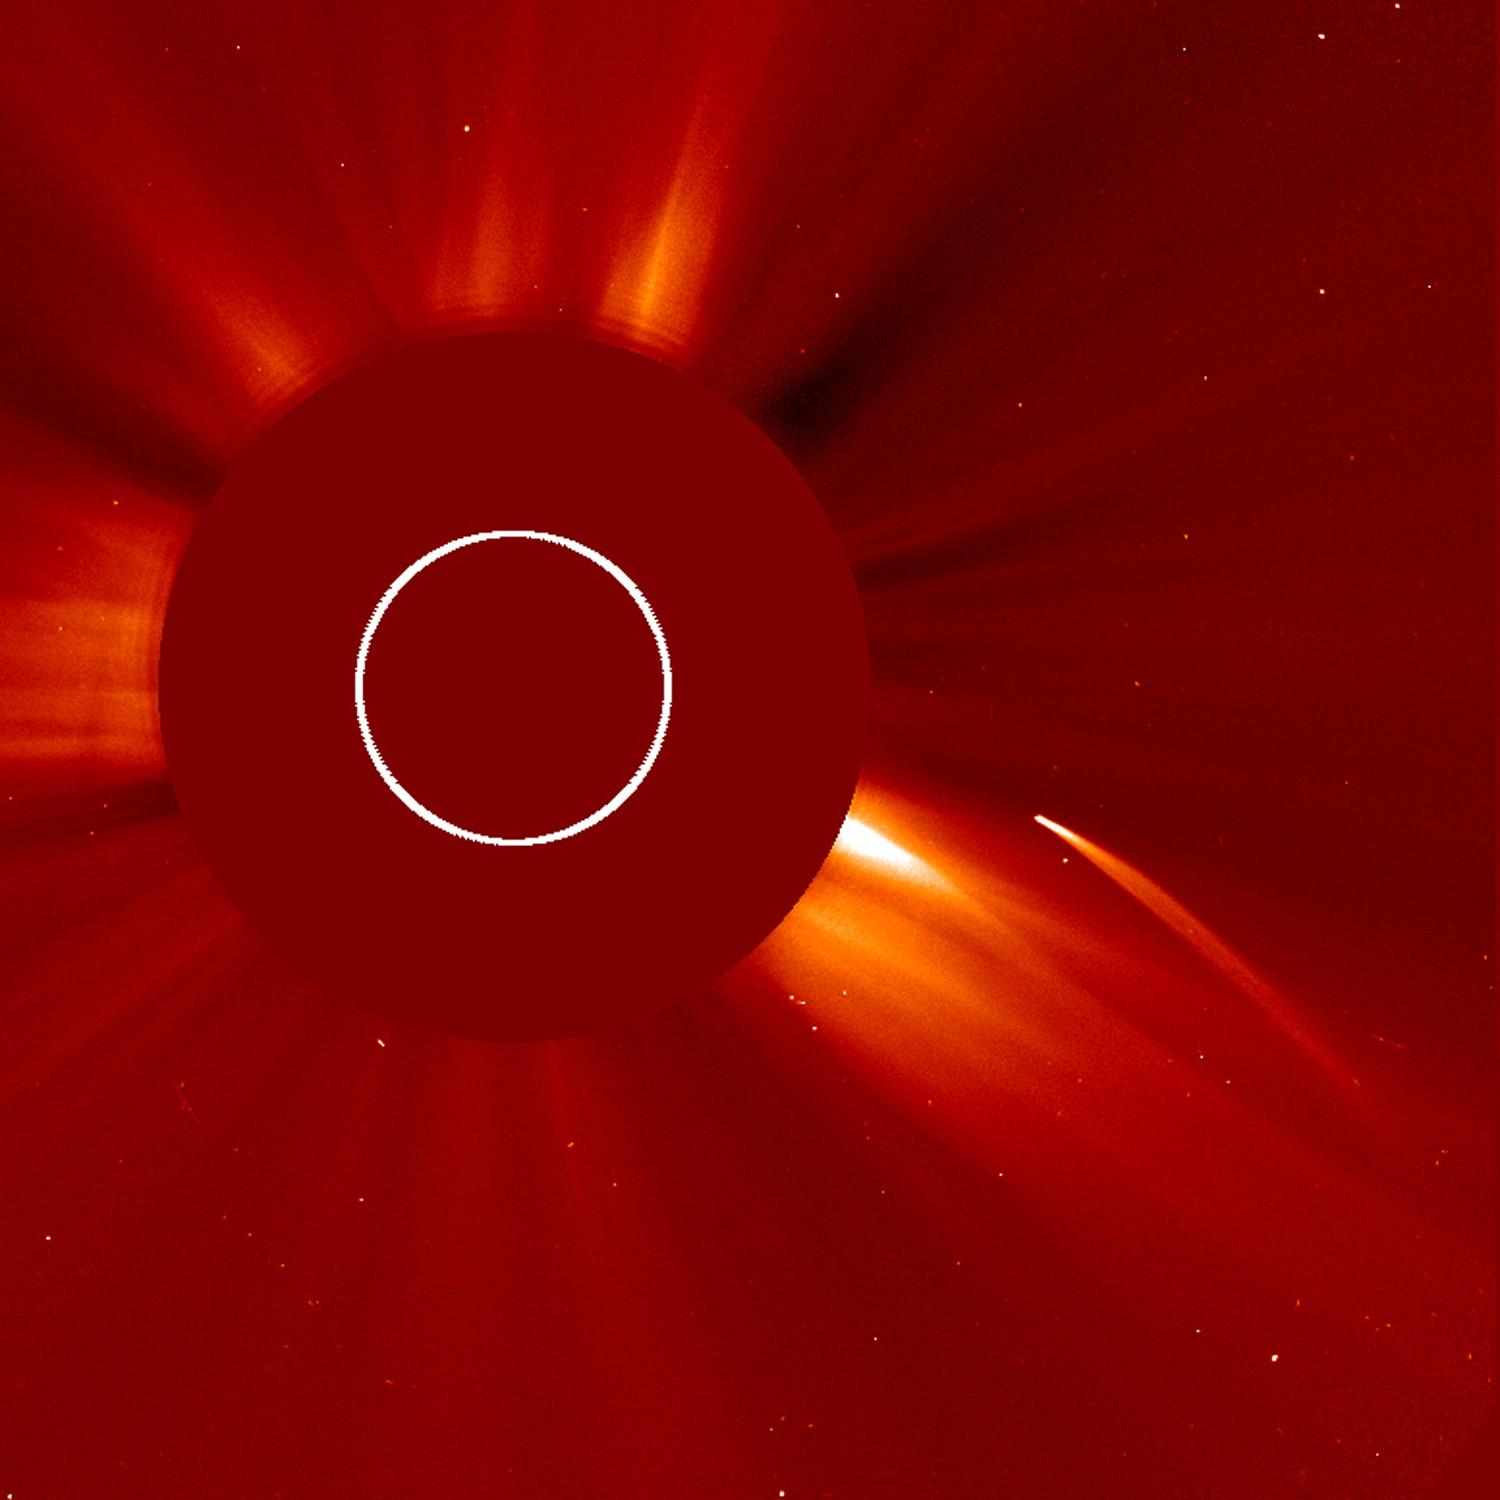 Risultati immagini per Sun diving comet and unknown deep space object captured by SOHO Spacecraft